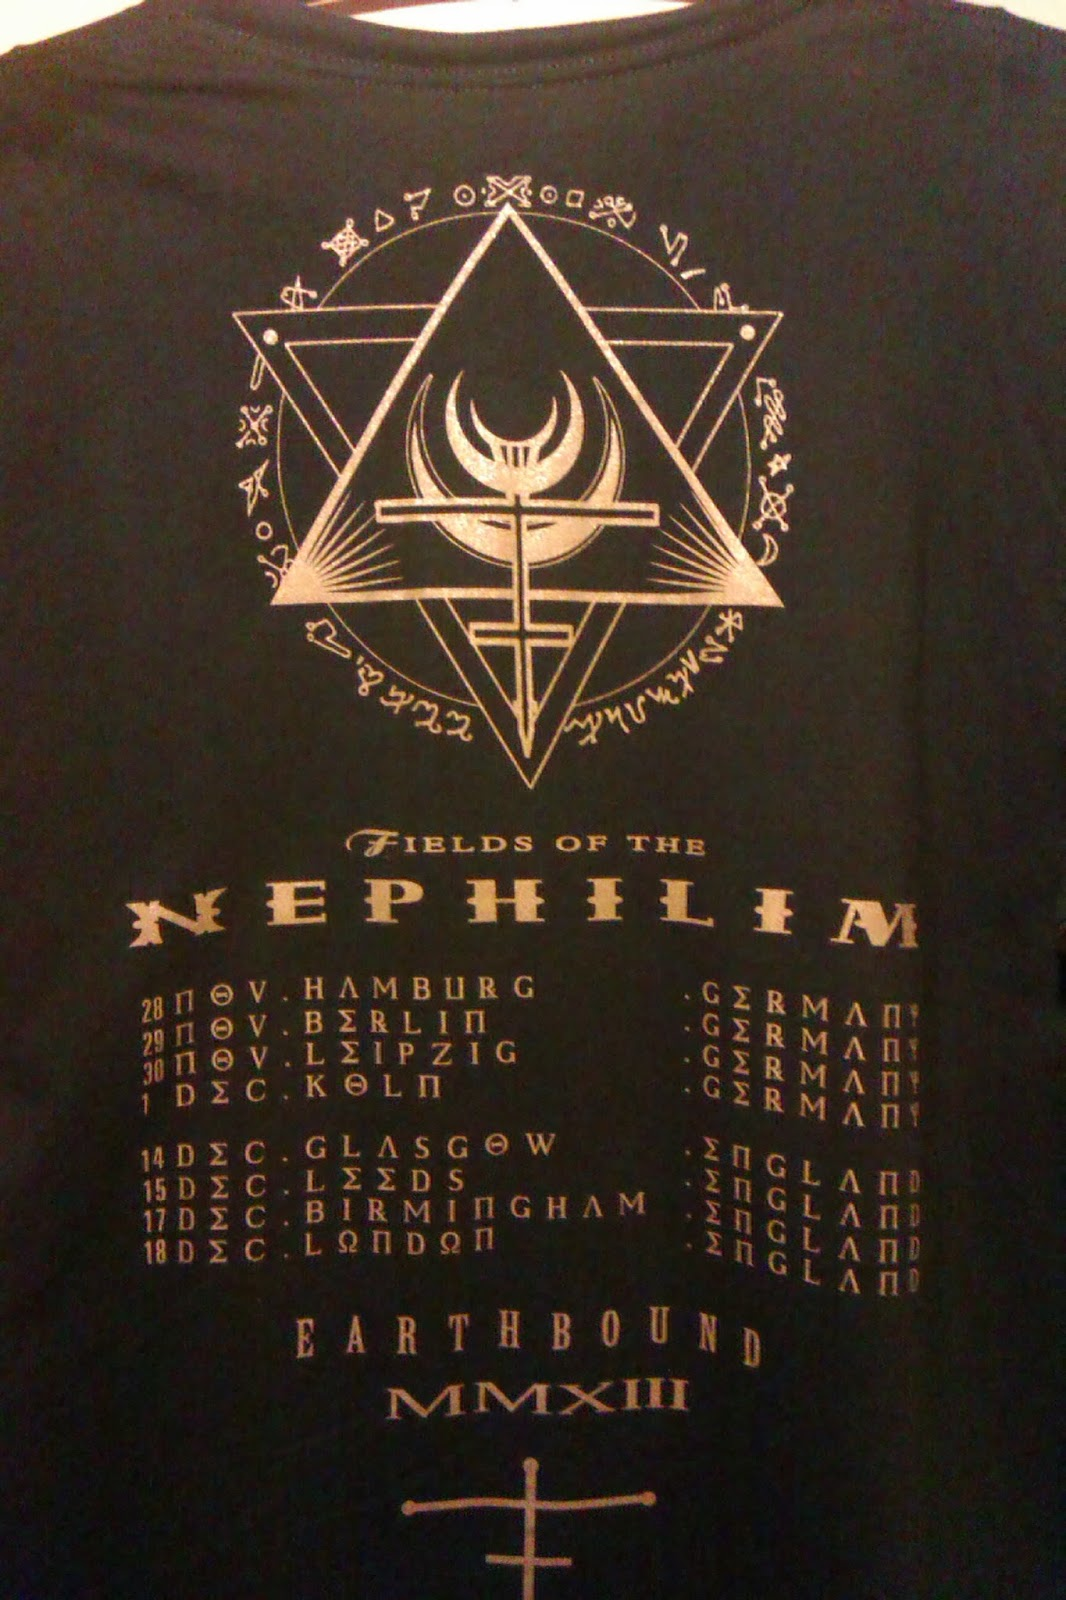 ... the back of the new Tour T-Shirt ...